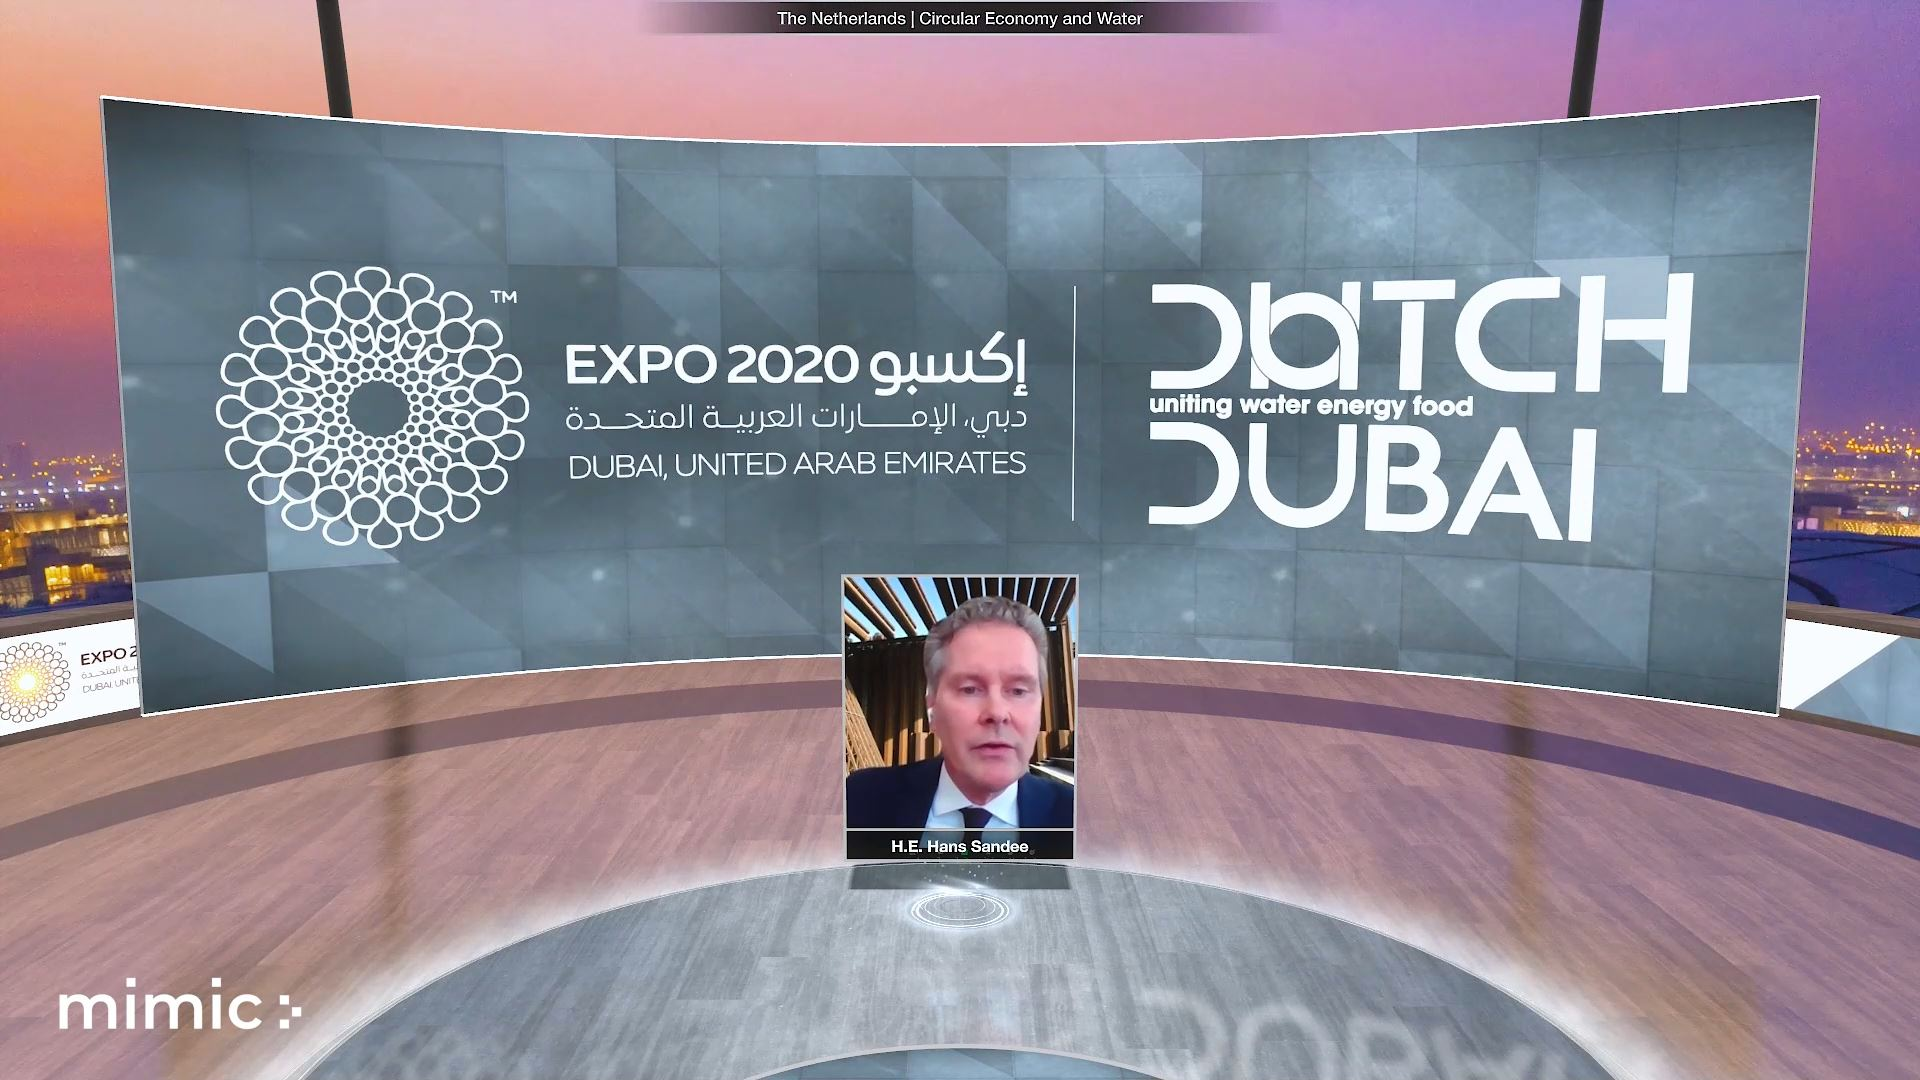 expo 2020 urban and rural development week virtual event live feed from speaker